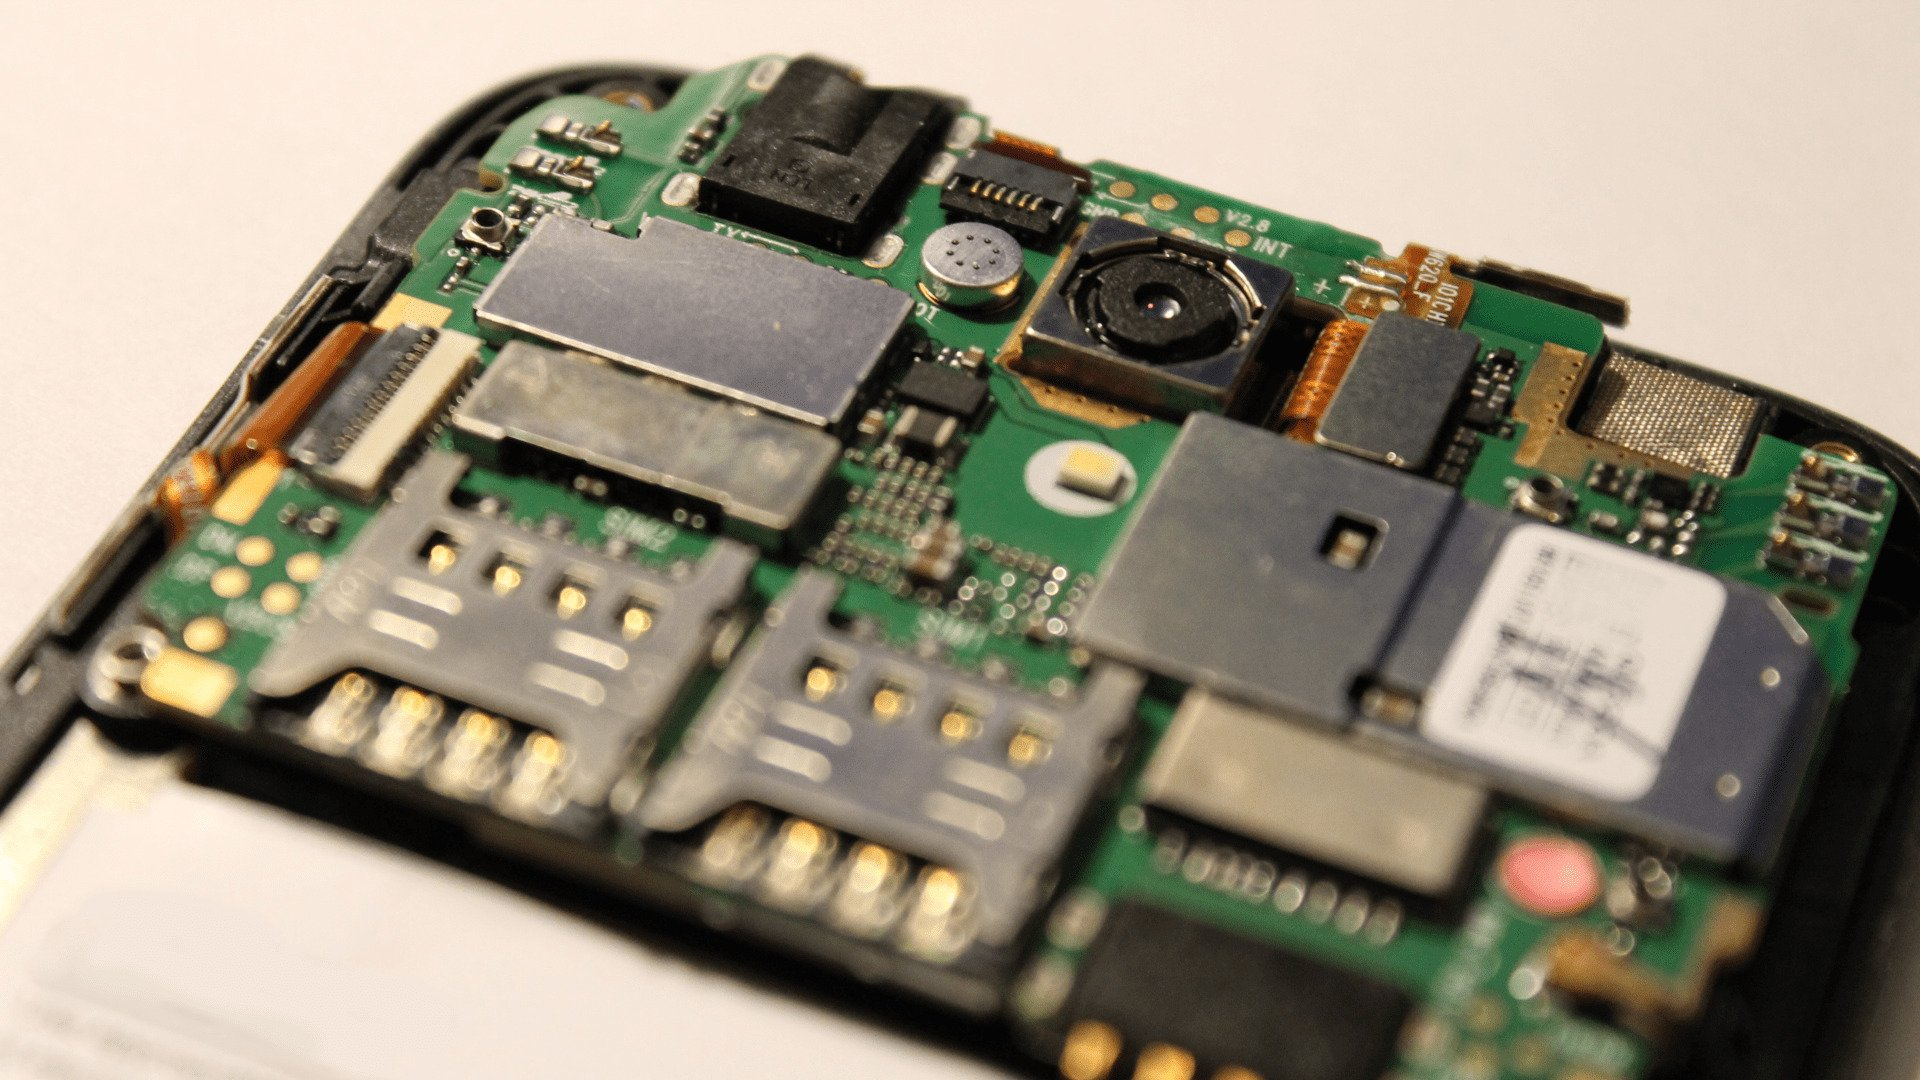 Mobile Stripped To Show Internal Components